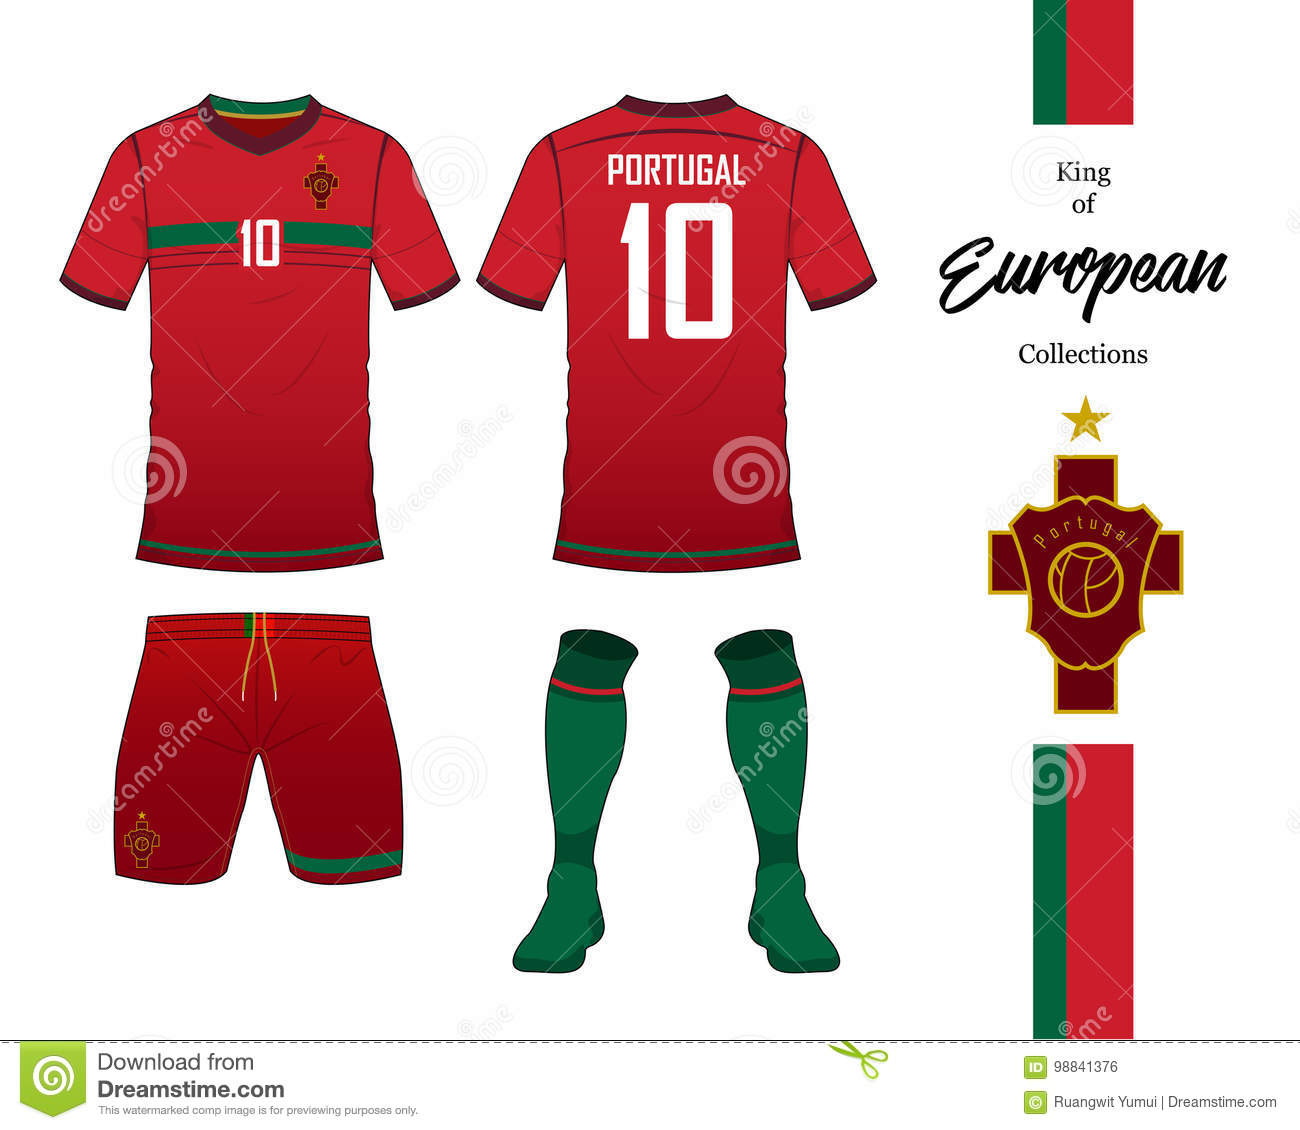 finest selection 5fb0b c9847 Portugal Football National Team Uniform Stock Vector ...